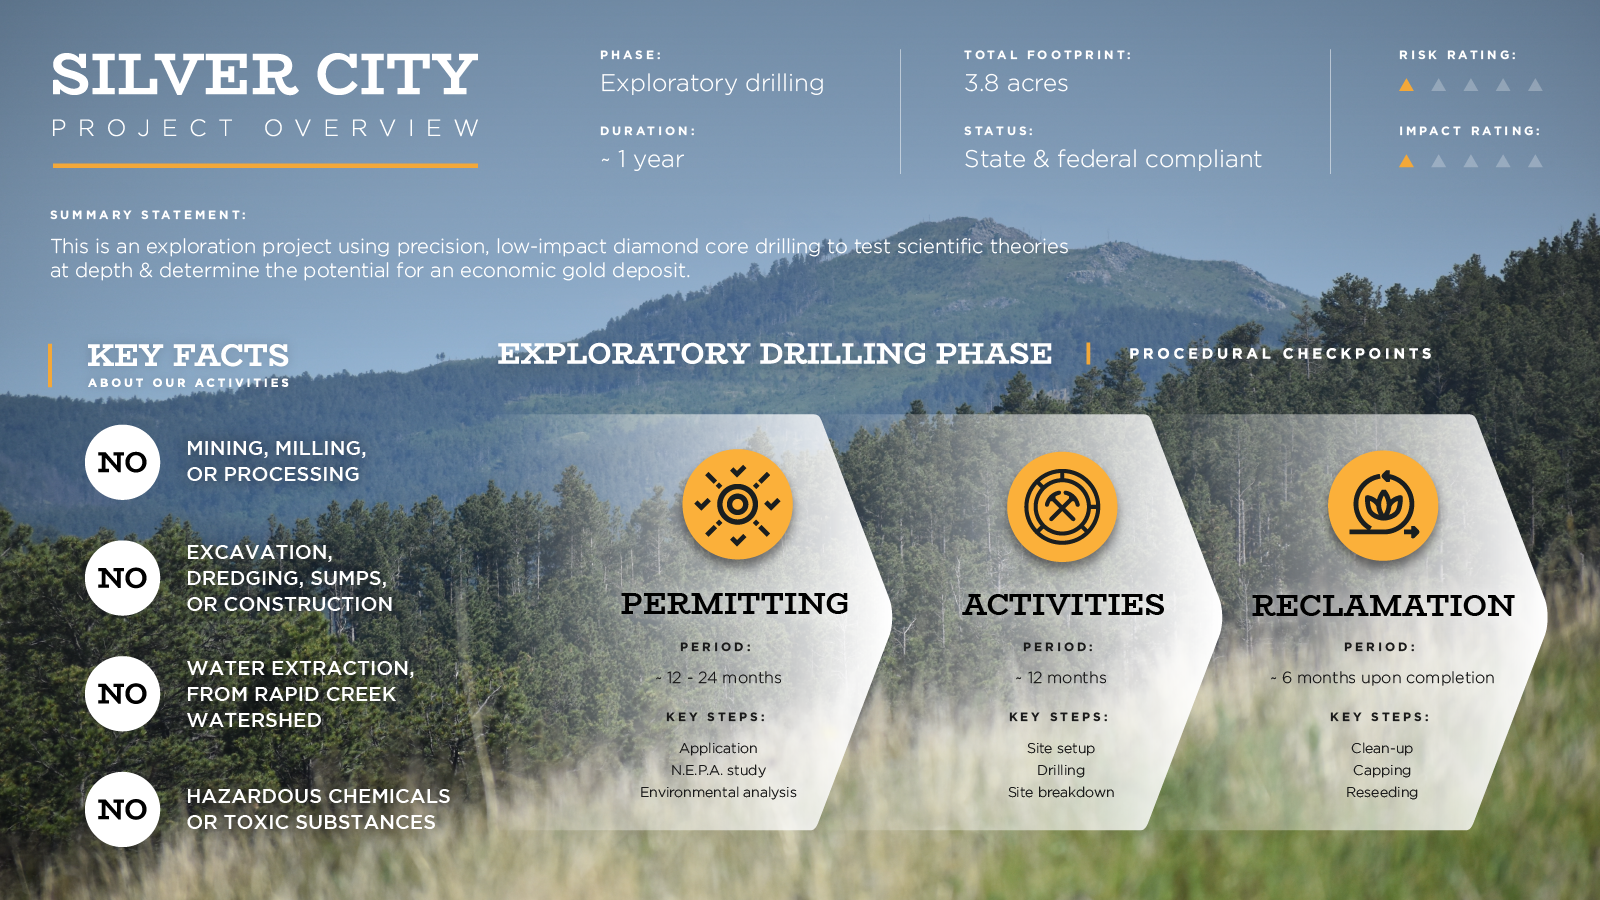 Silver City Project Overview